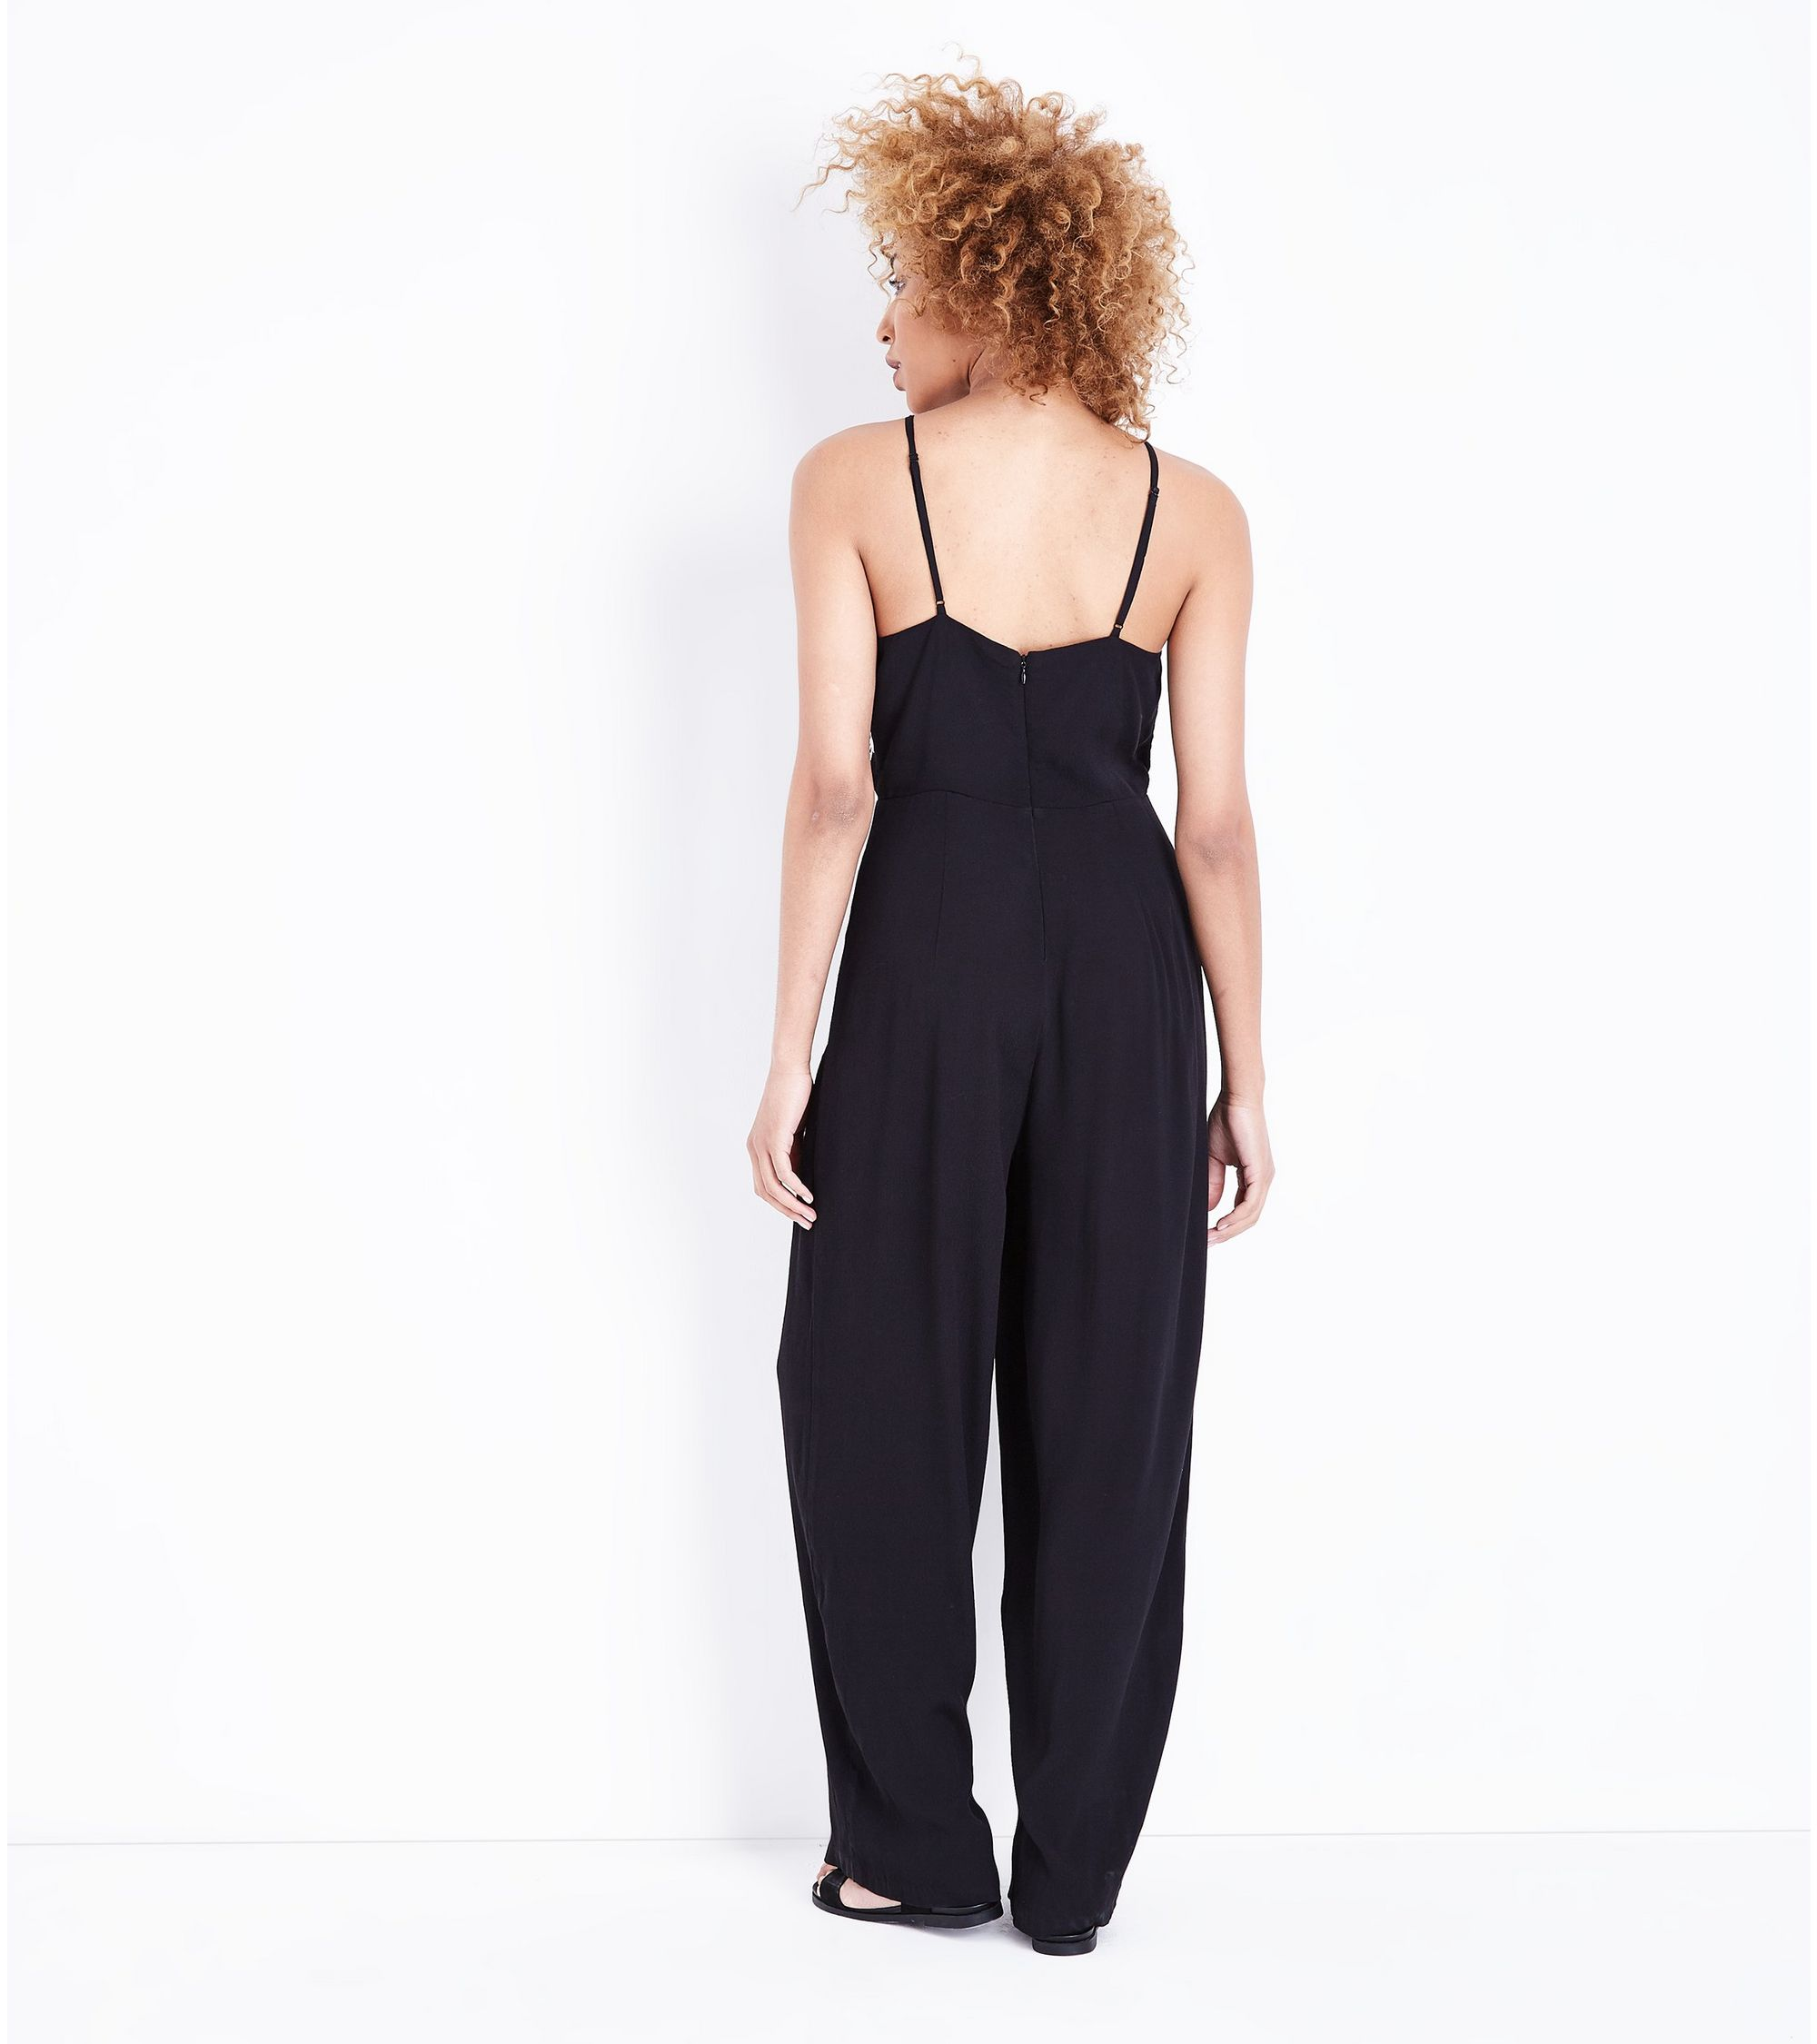 7effeba2b2 New Look Black Floral Embroidered Wide Leg Jumpsuit at £29.99